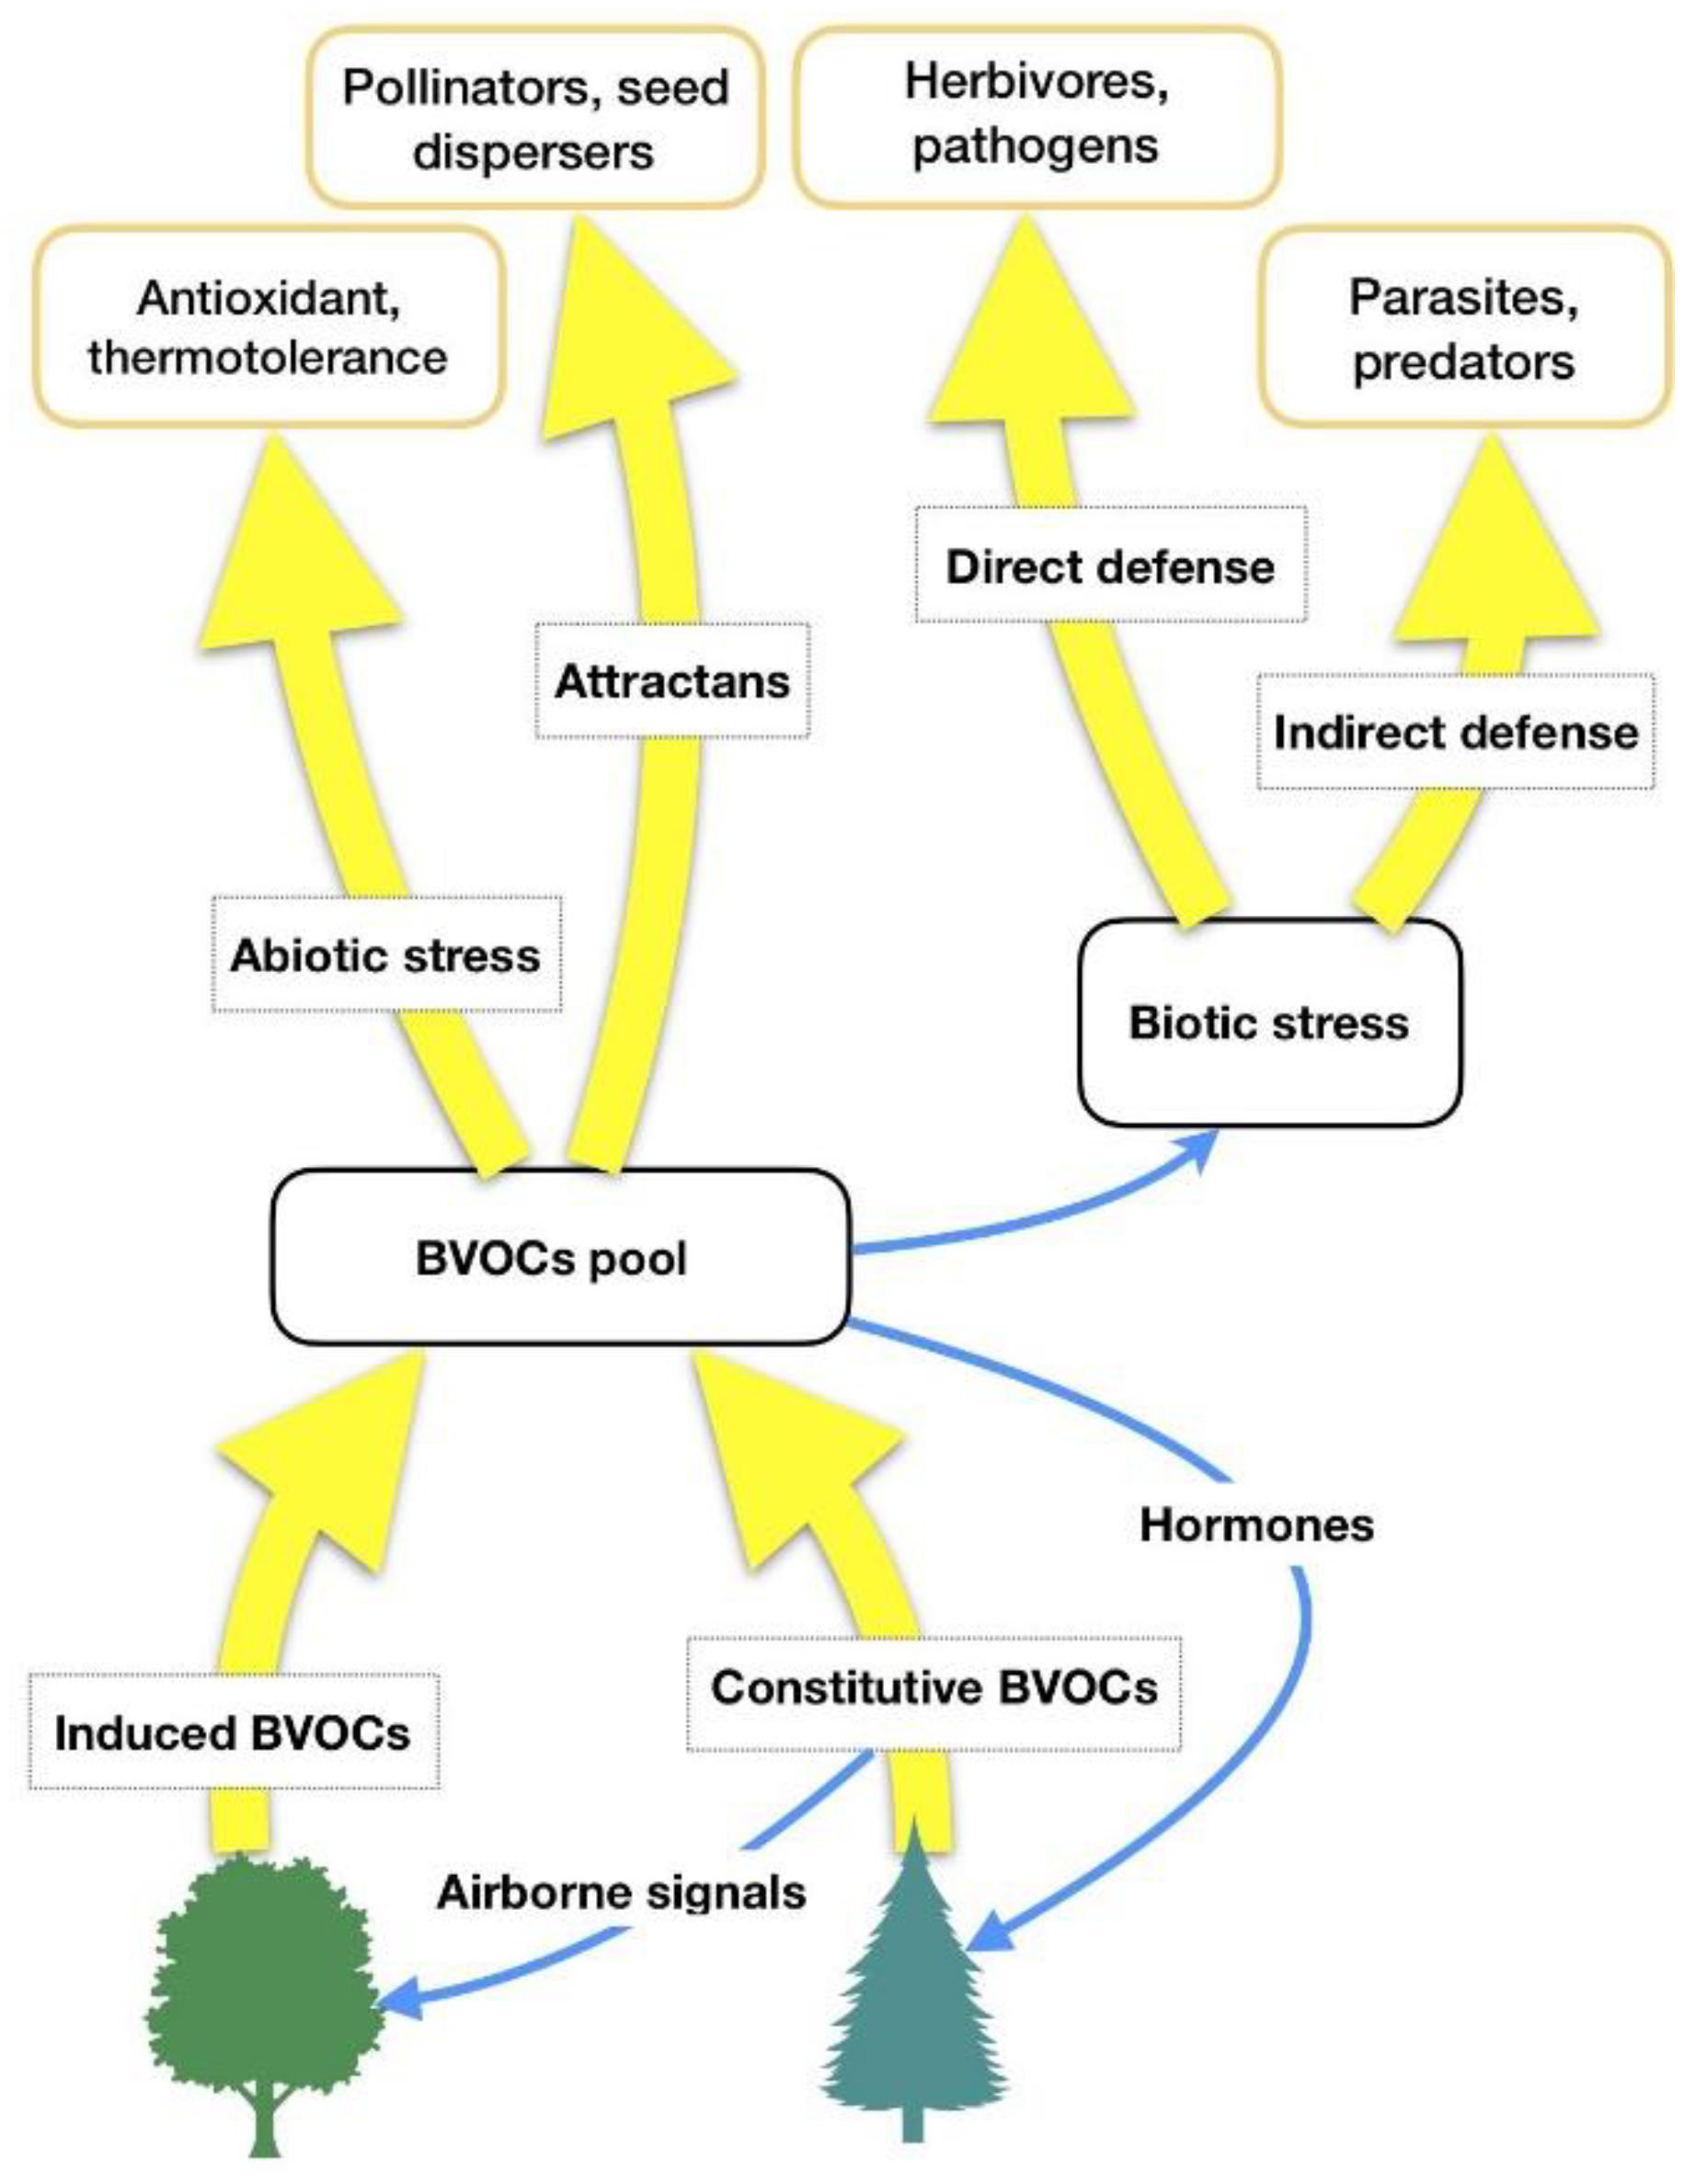 Ijerph Free Full Text Forest Volatile Organic Compounds And Their Effects On Human Health A State Of The Art Review Html